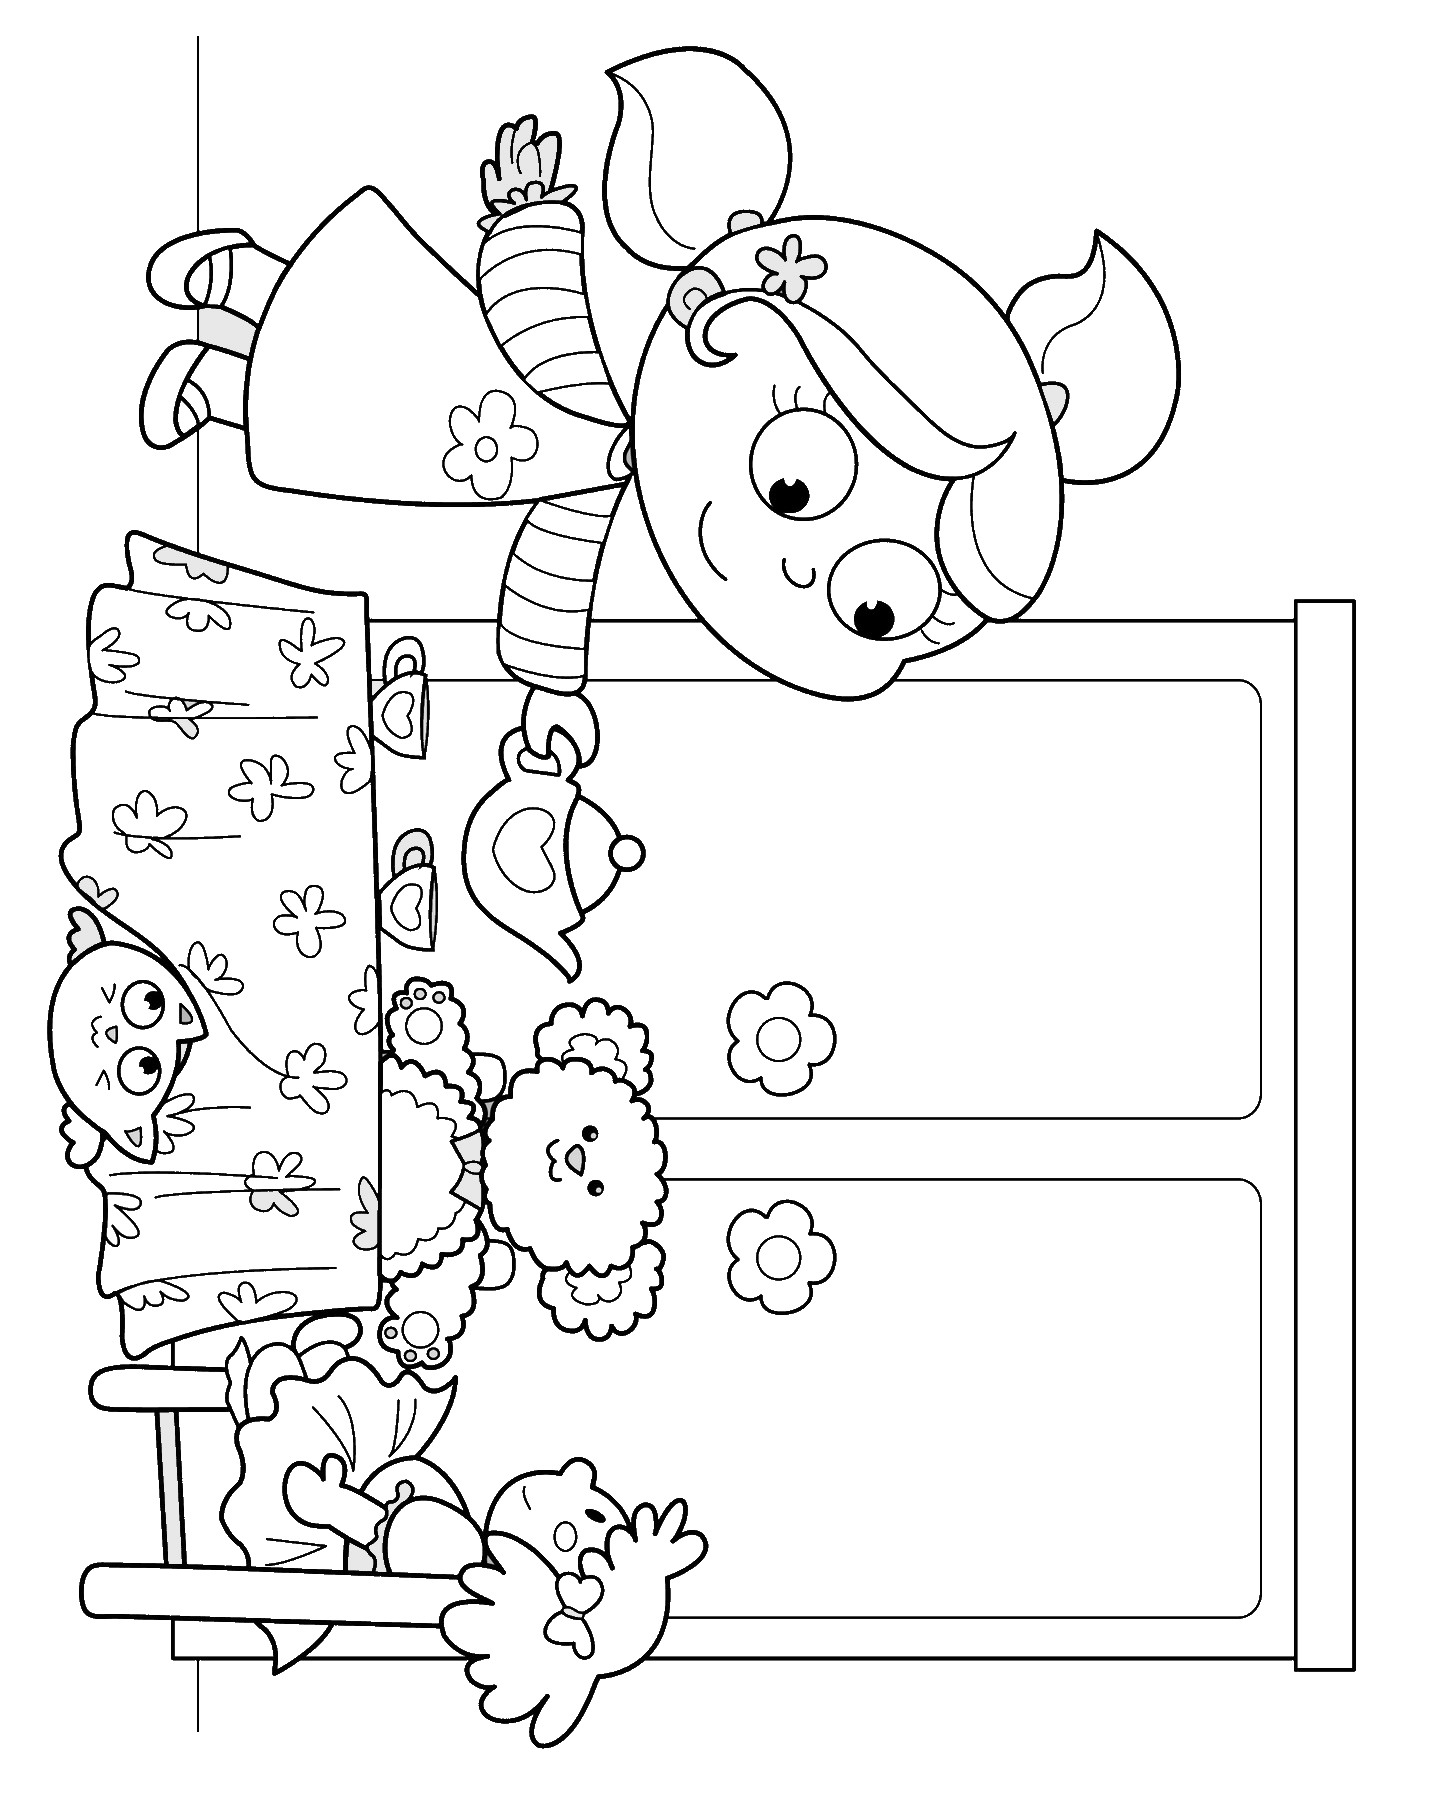 tea party colouring pages tea party coloring page coloring home party tea pages colouring